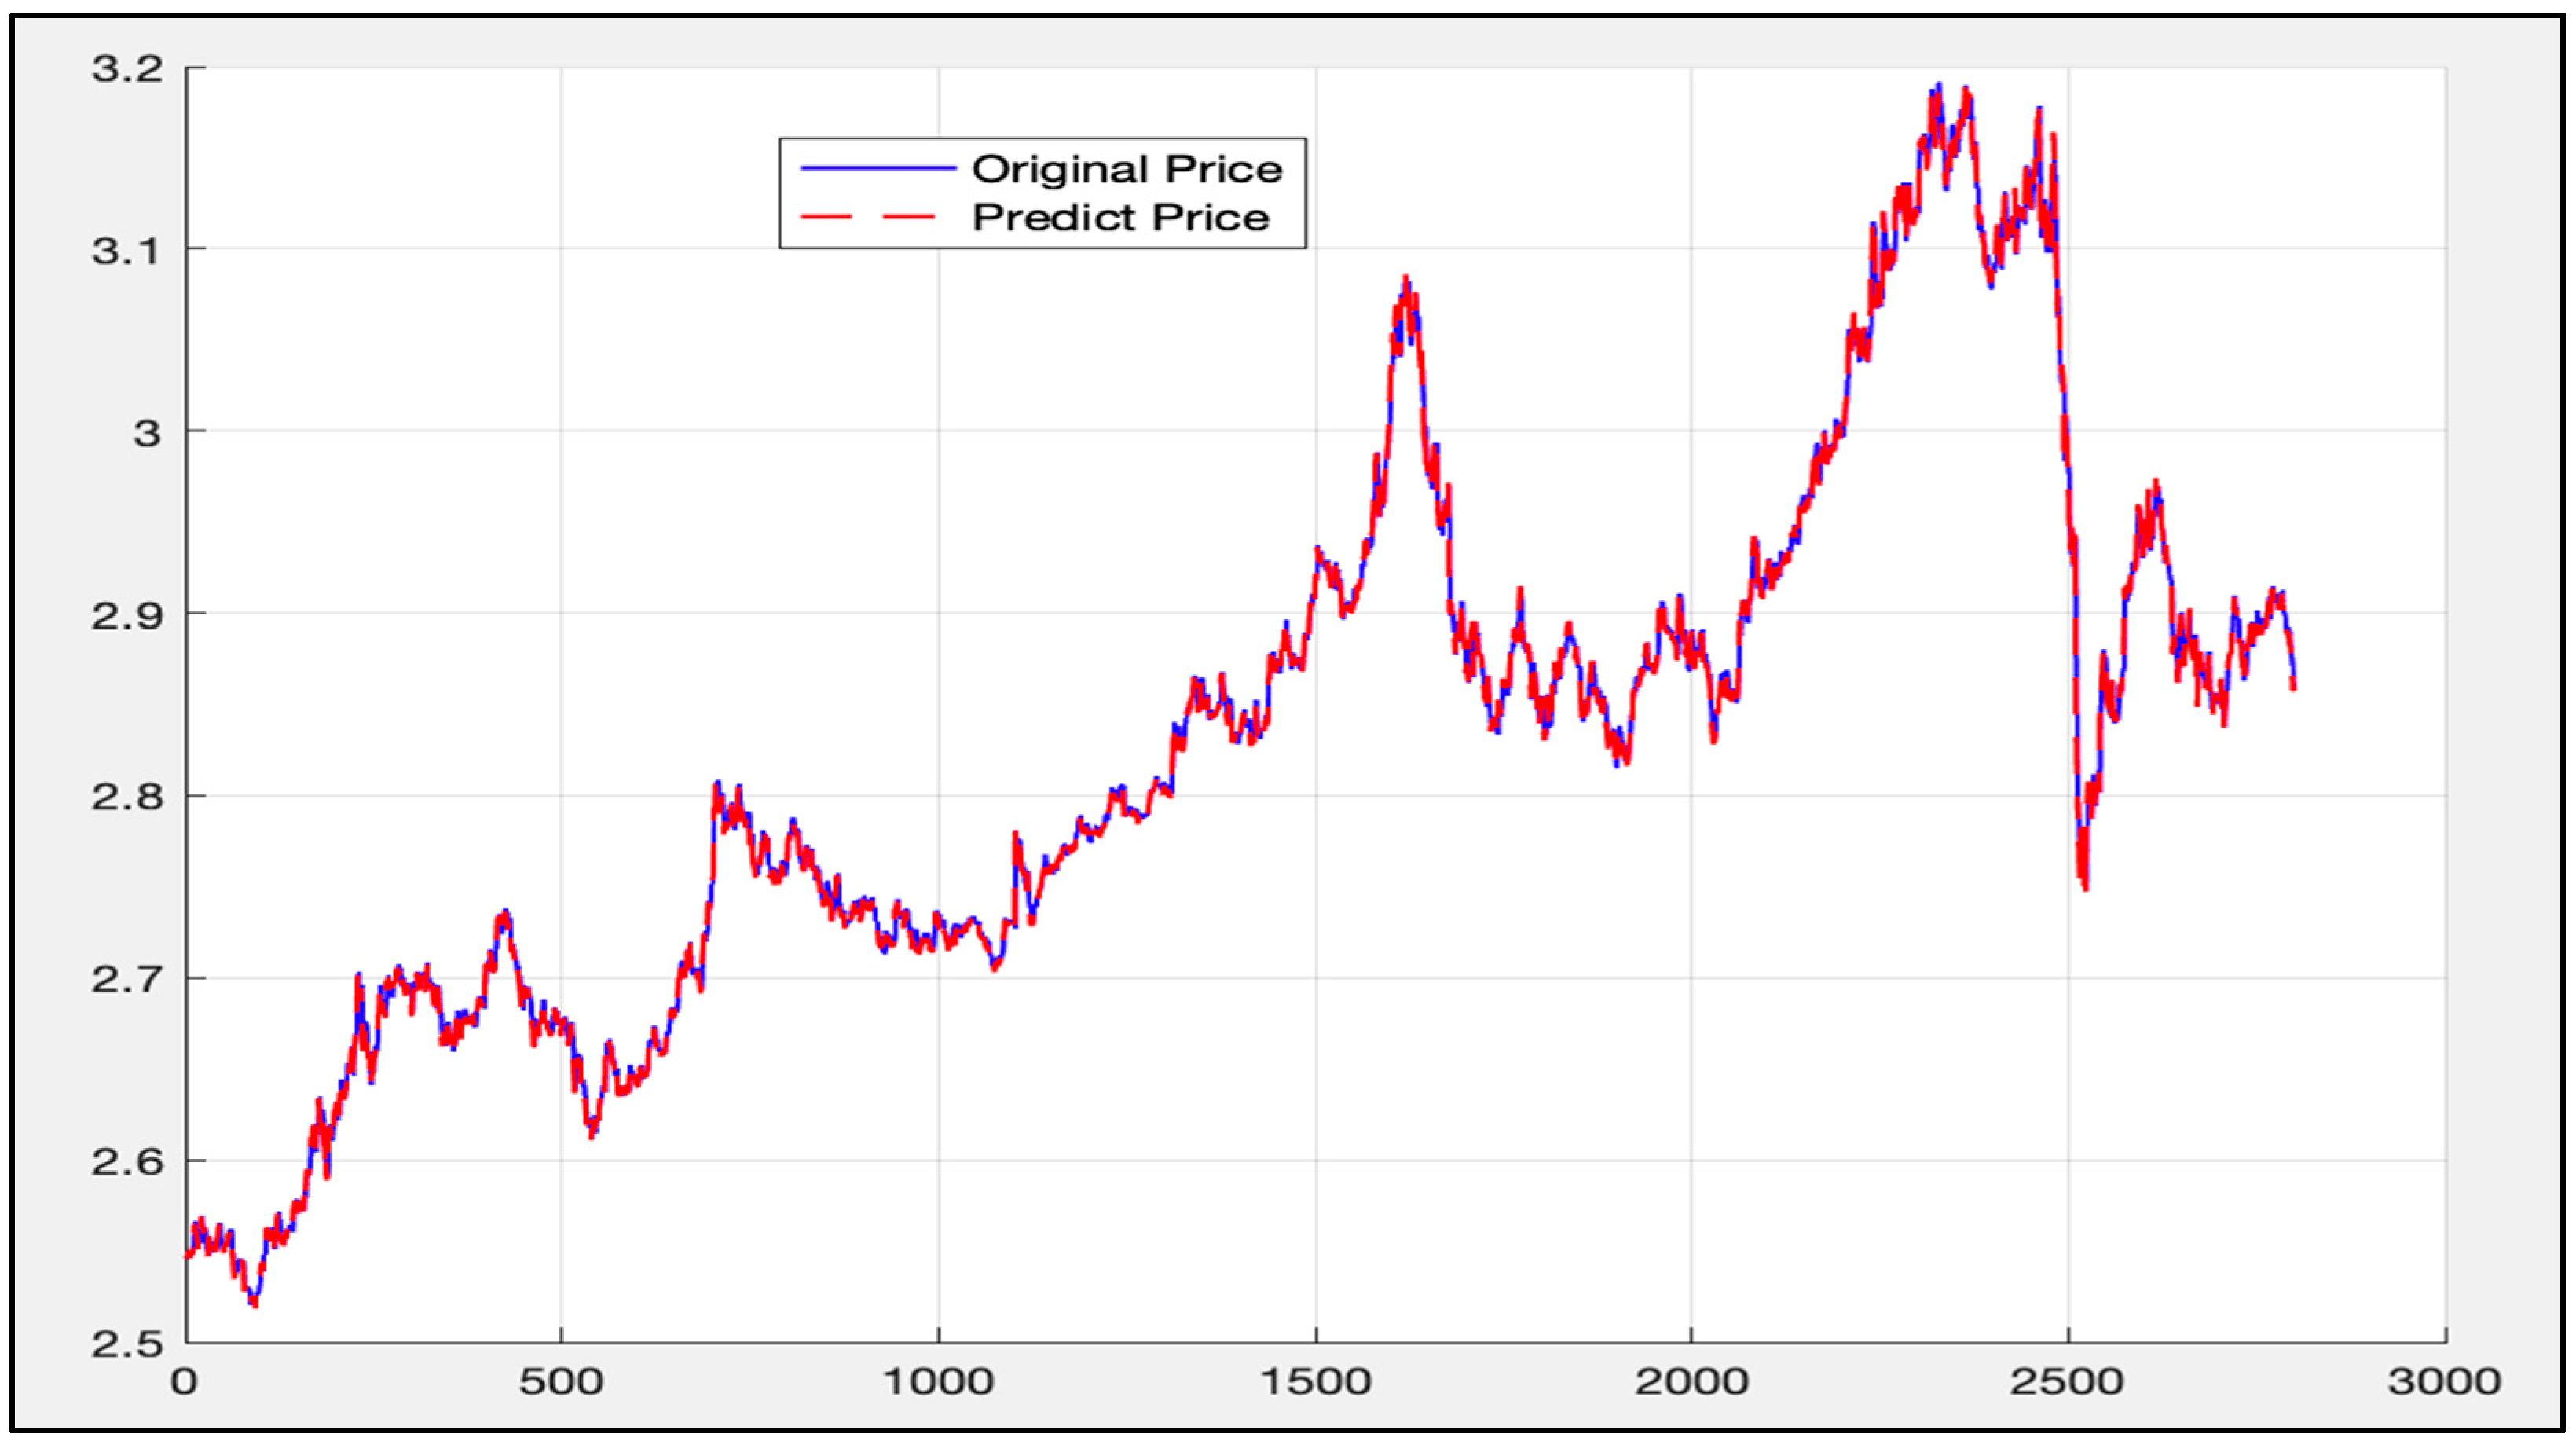 Stock Price Simulation Matlab